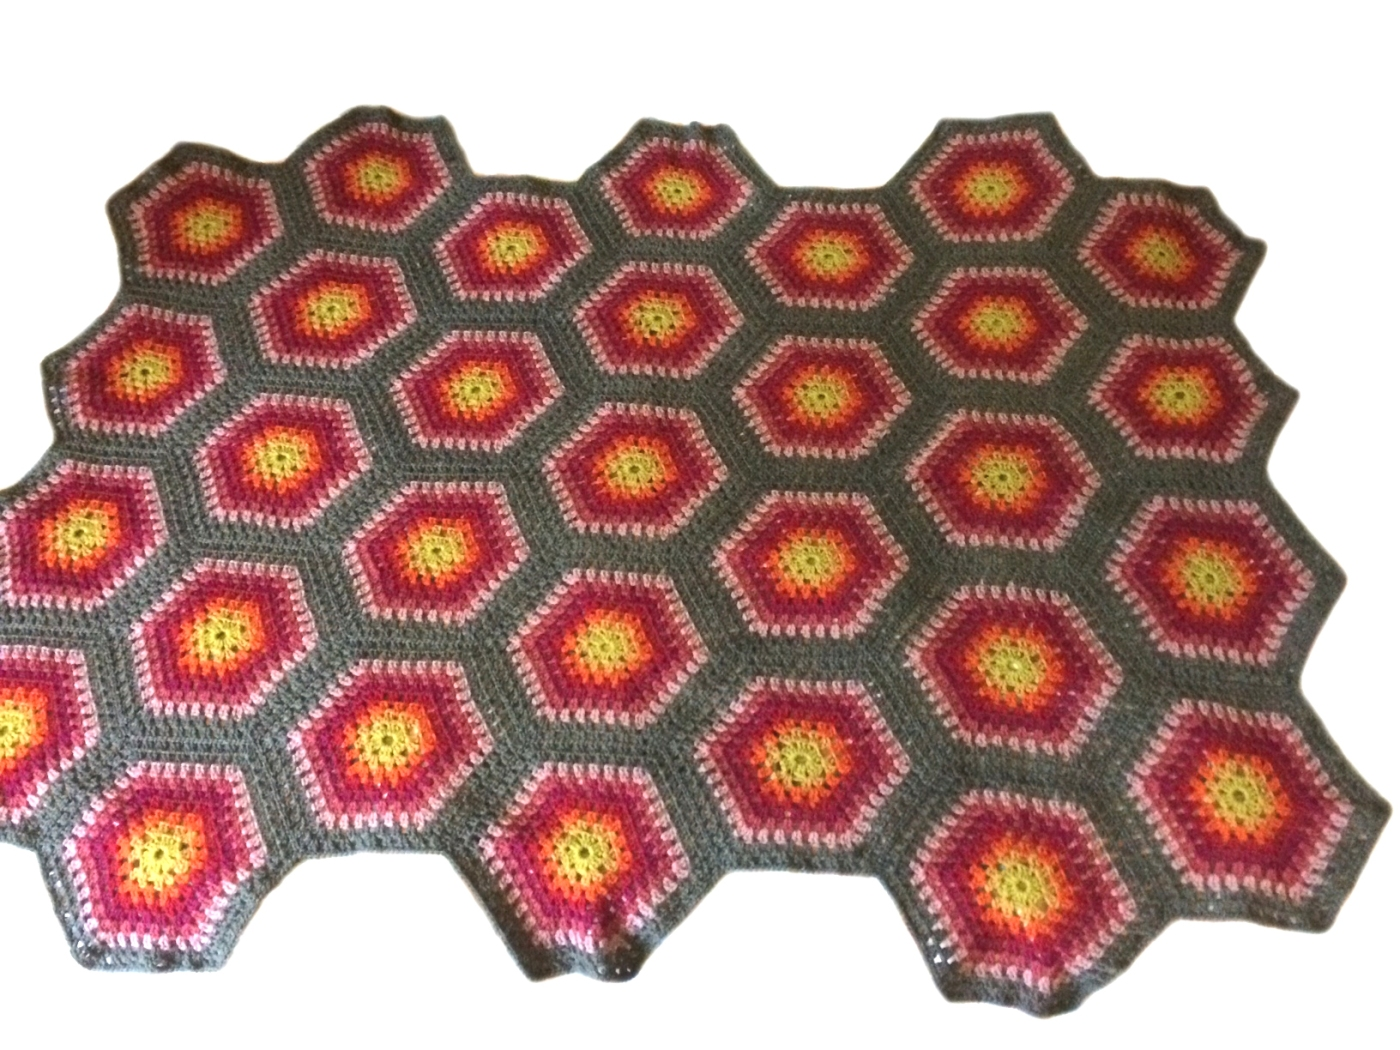 Crochet Hexagon Wool Blanket